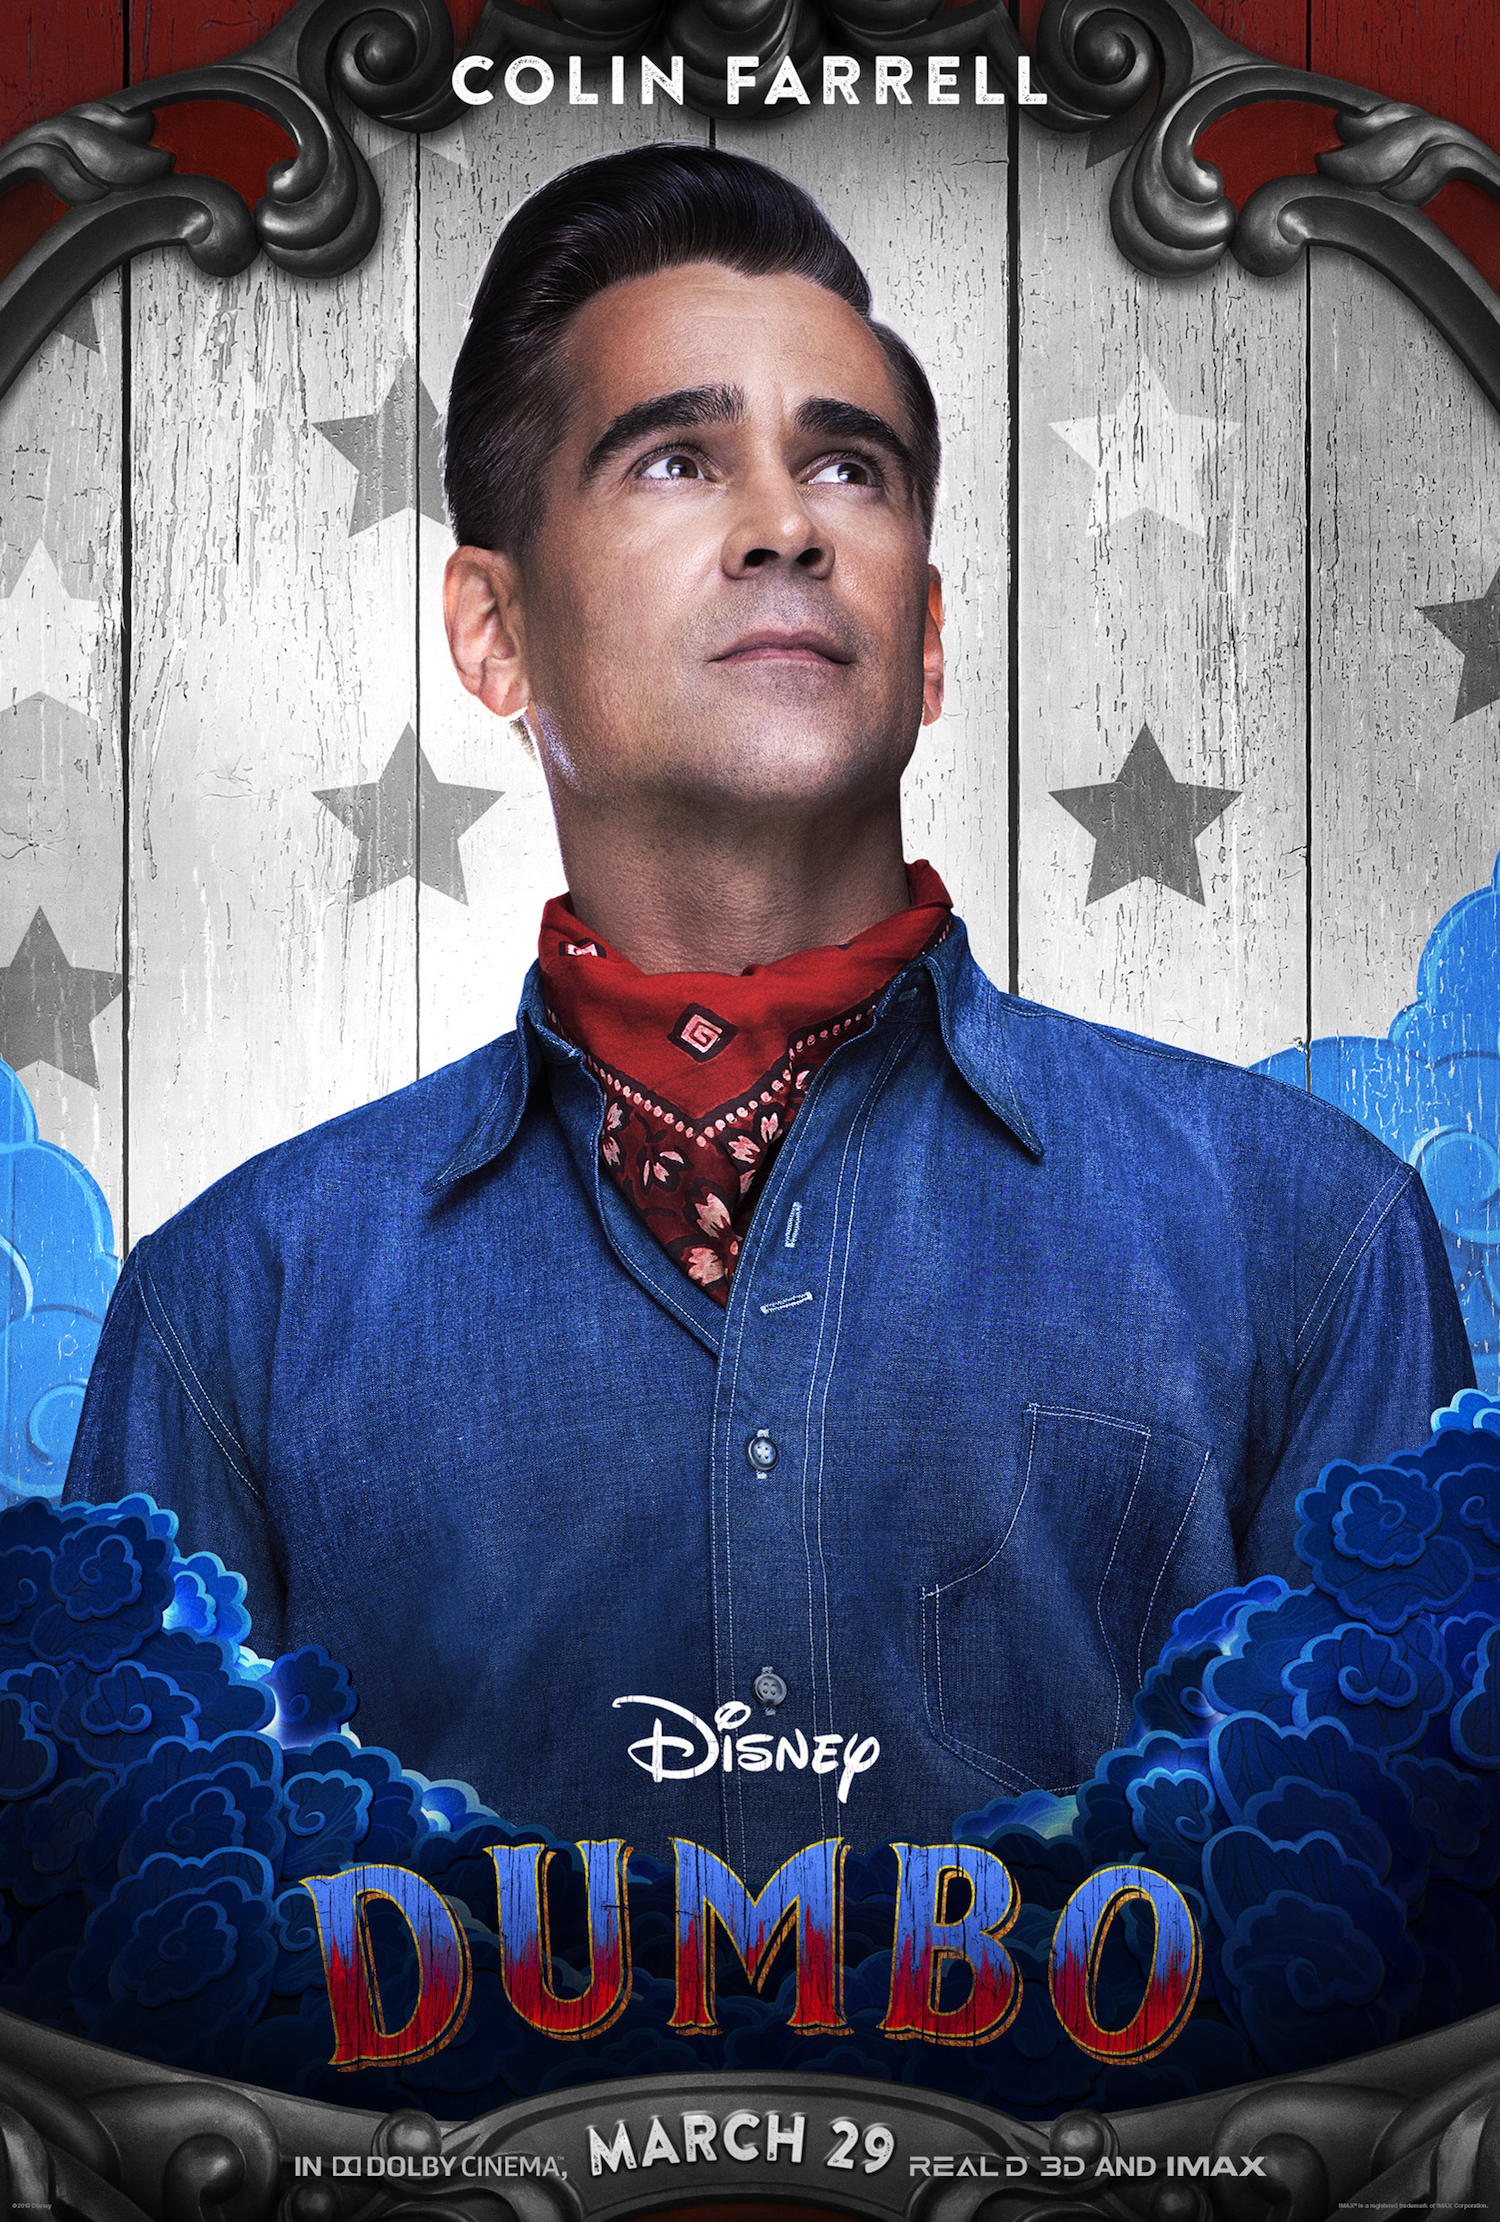 Colin Farrell stars in the new live action Disney Dumbo movie.